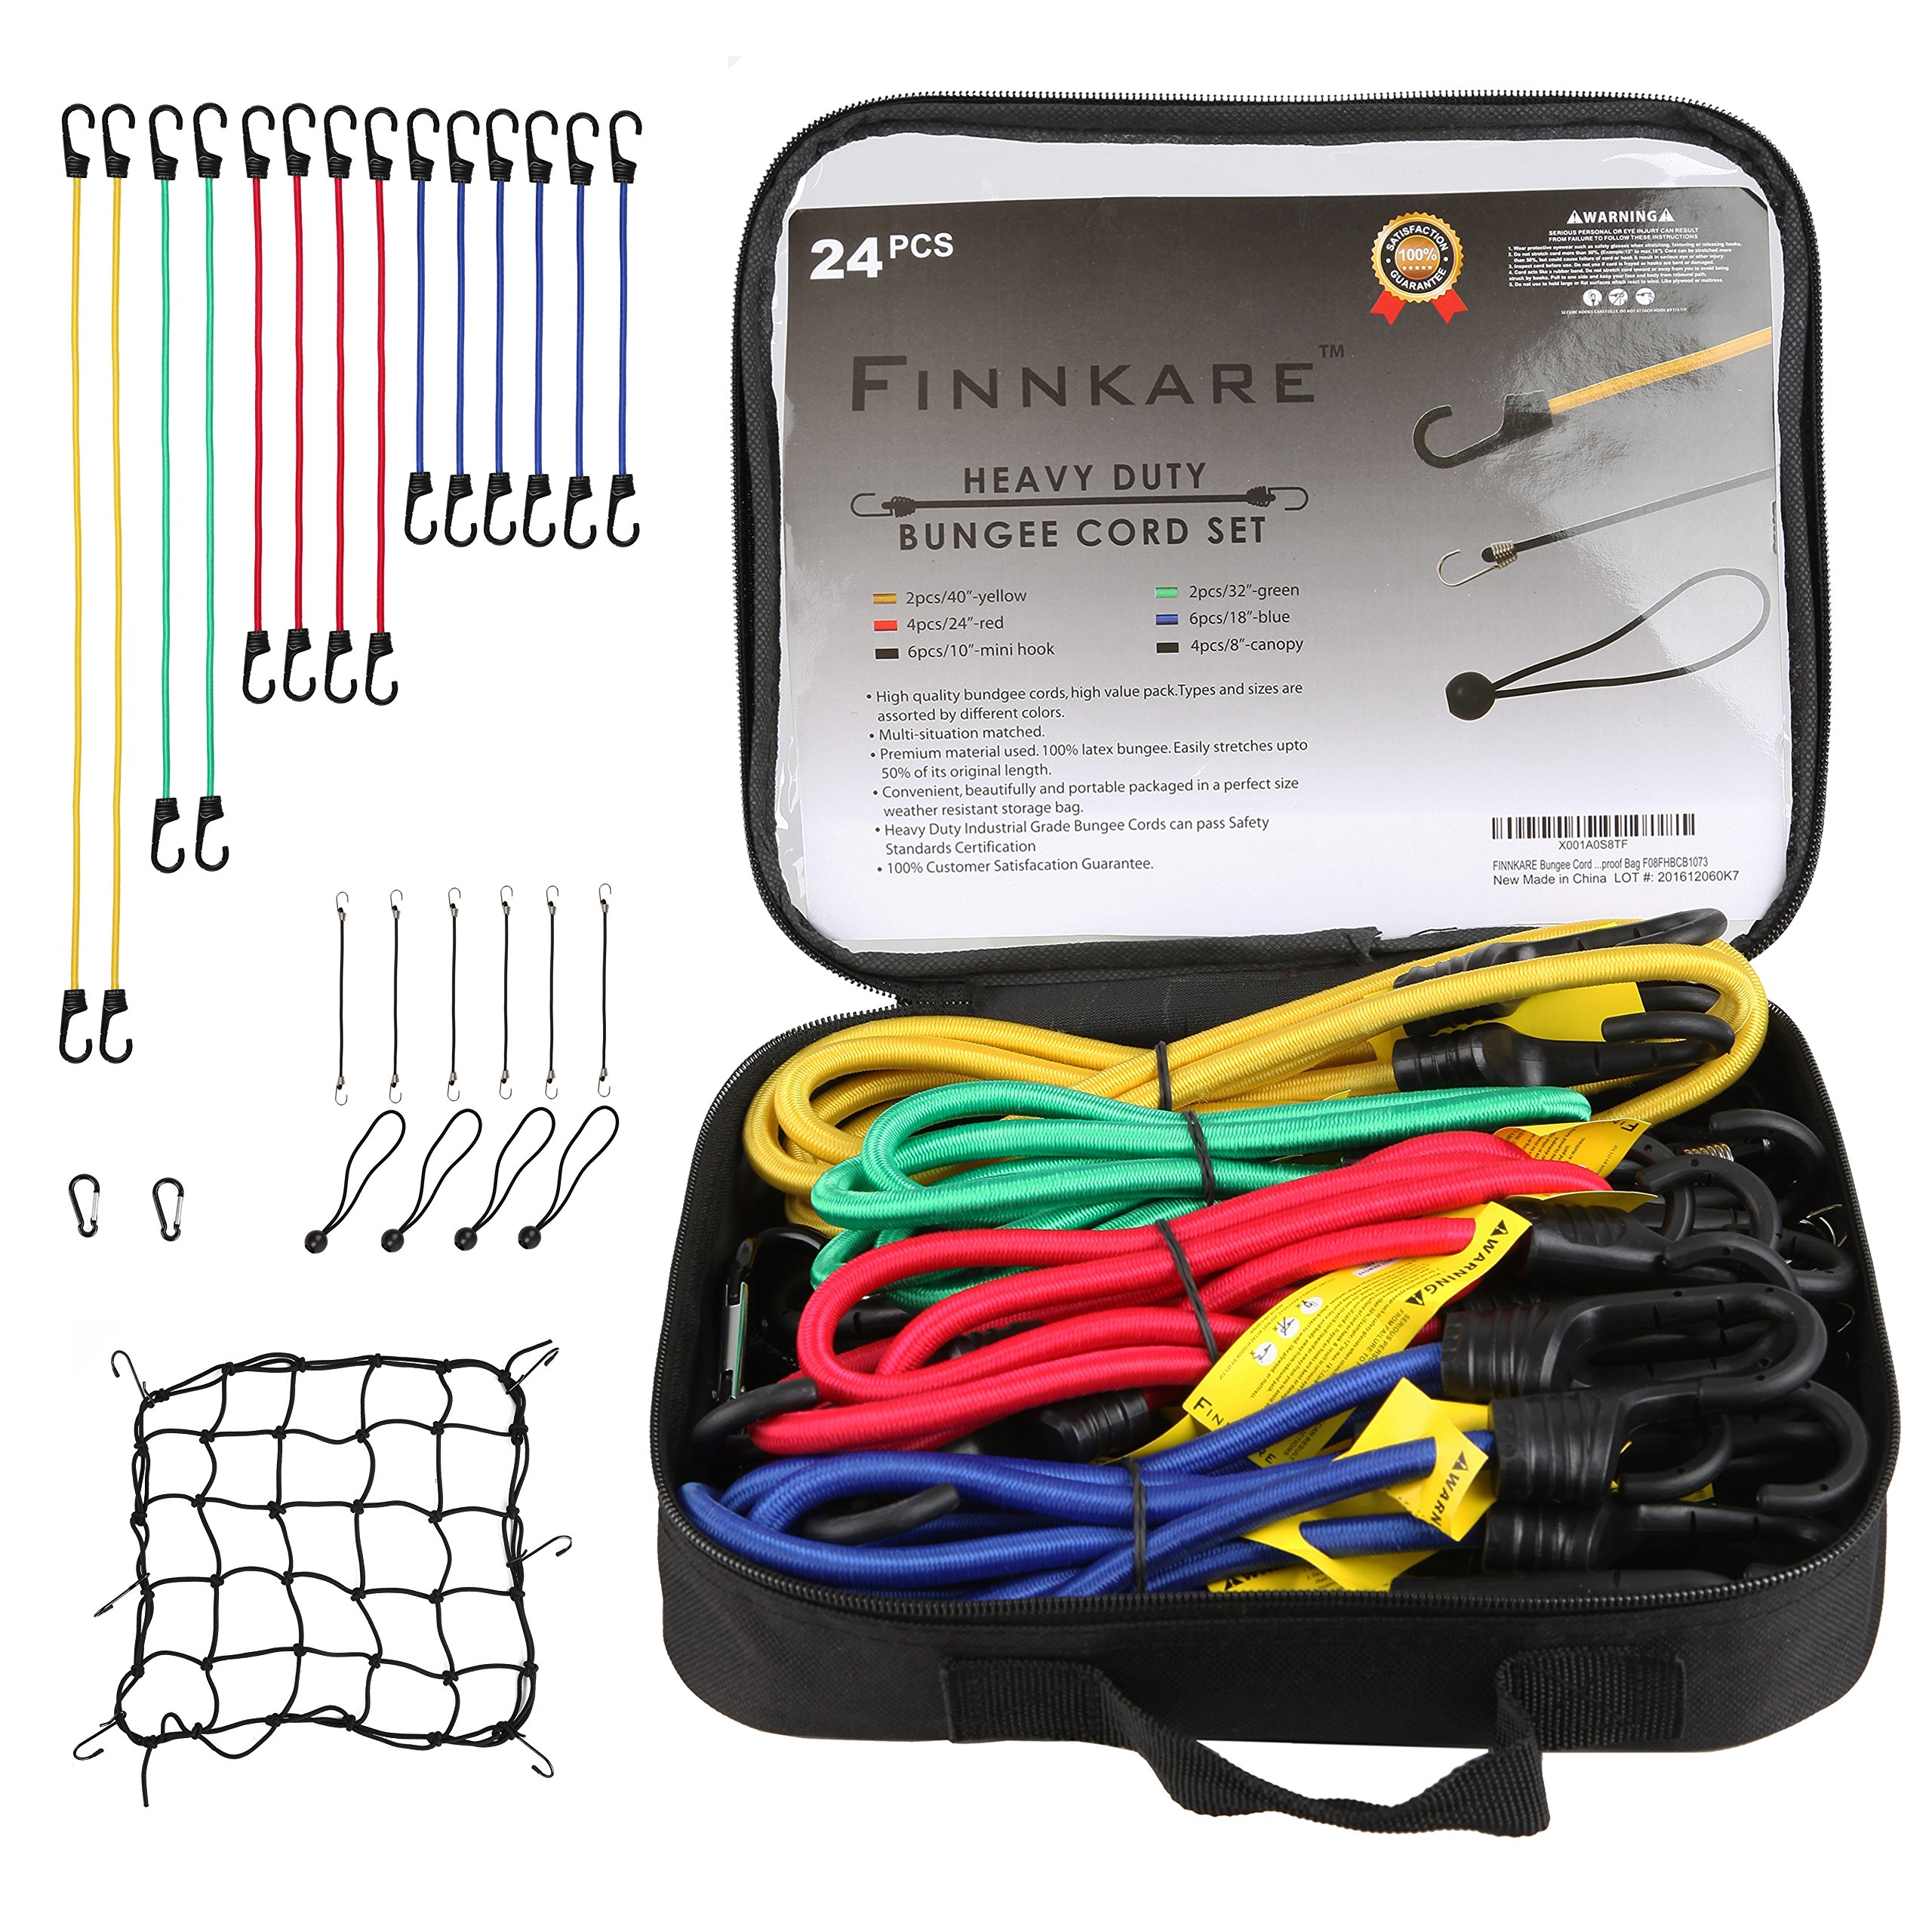 FINNKARE Premium Quality Bungee Cord Assortment in portable bag- 24 Piece Set, 100% latex bungee core, with Canopy Ties & Bonus Cargo Net and carabiner, Plastic Coated Metal Hooks